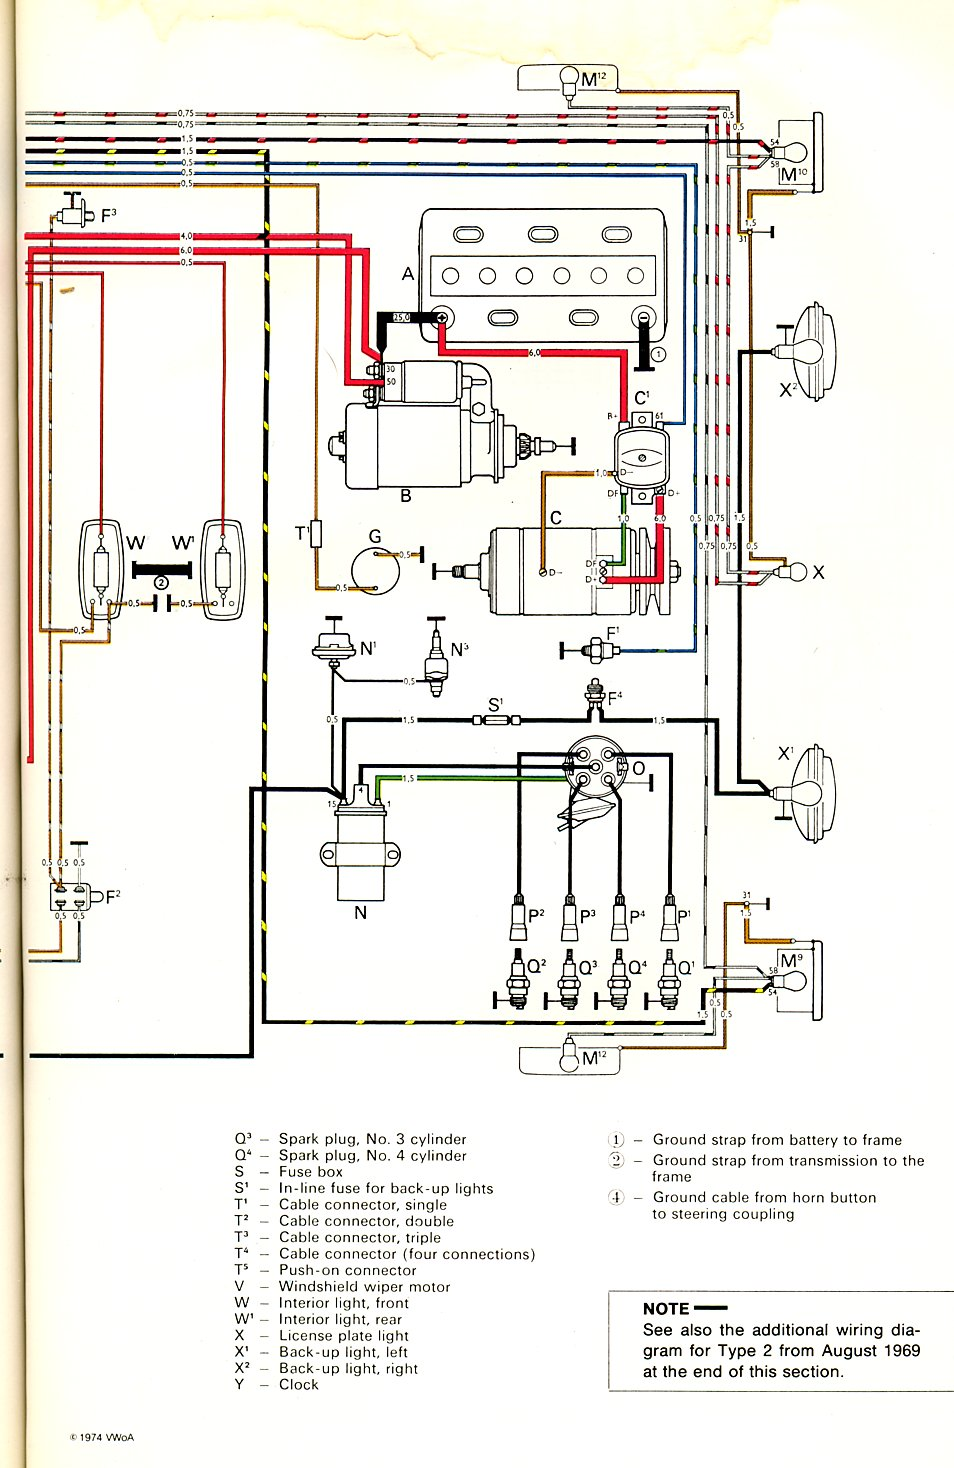 1970 Jeep Cj5 Wiring Diagram | Control Cables & Wiring Diagram  Postal Jeep Wiring Diagram on willys jeep wiring diagram, 1998 jeep cherokee wiring diagram, 1972 jeep wiring diagram,